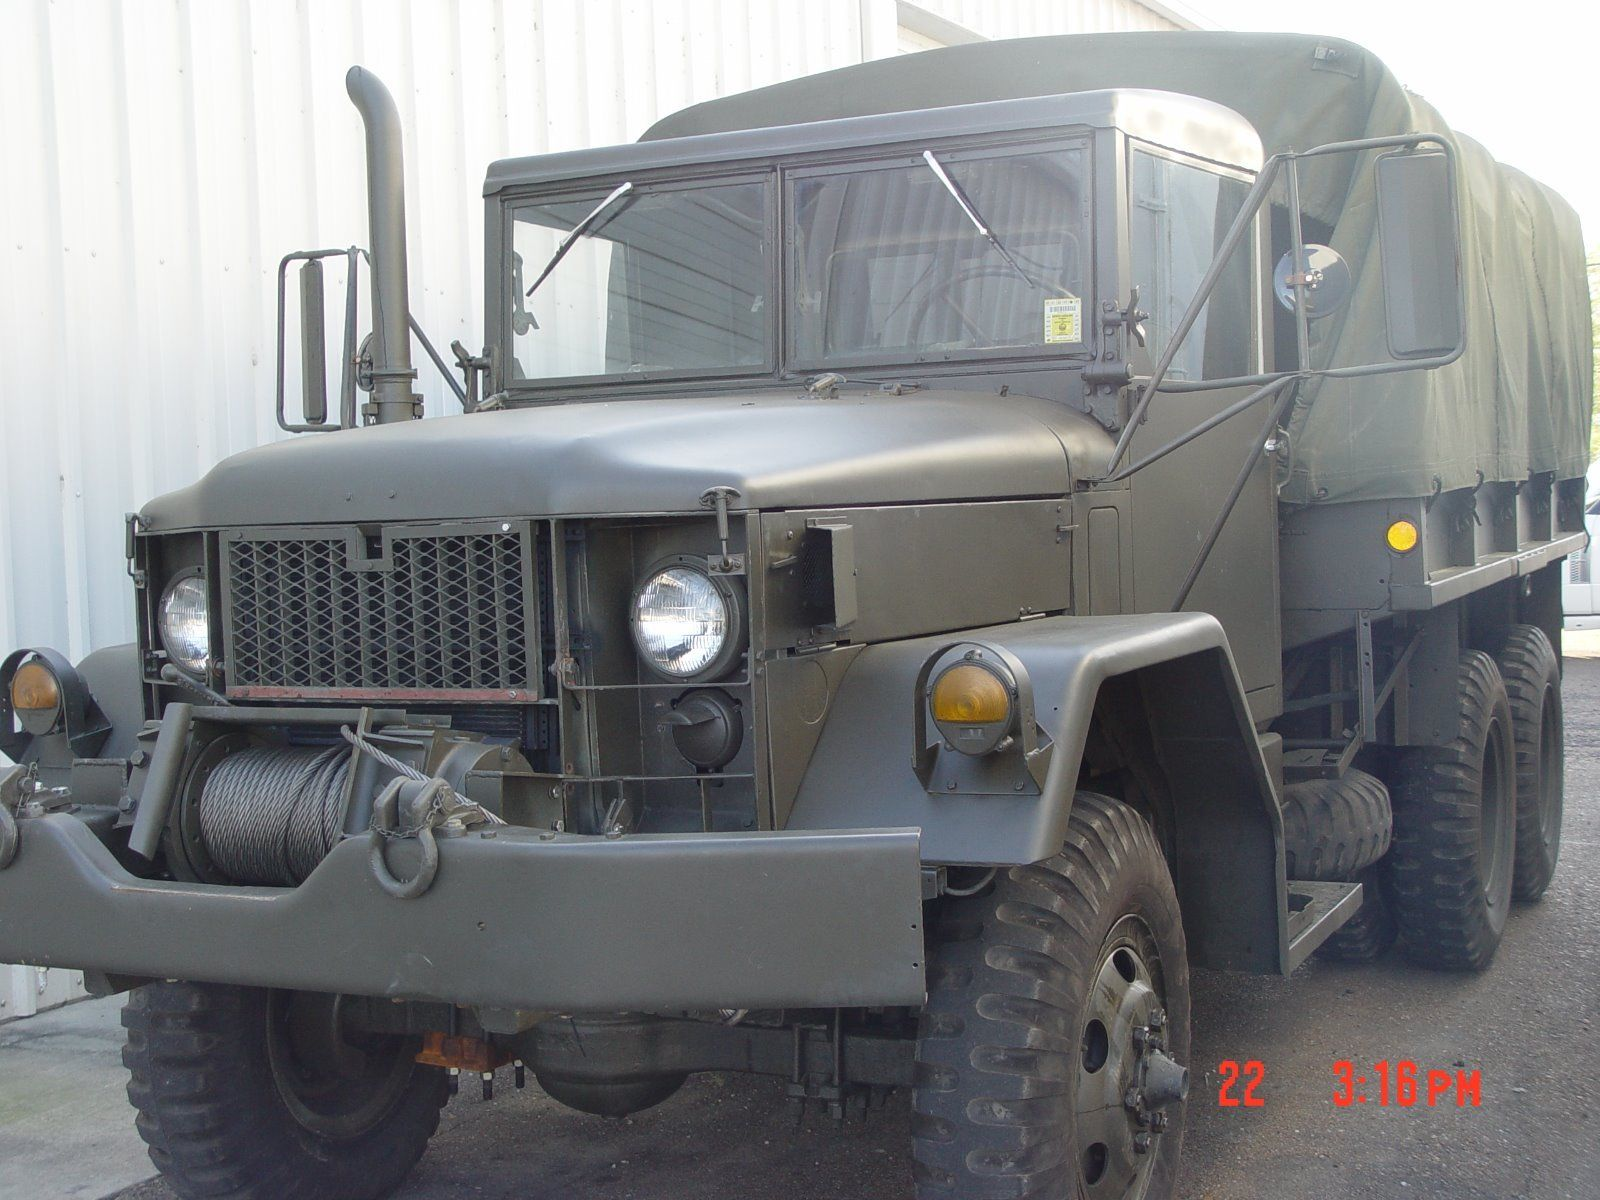 Trailer included 1970 Kaiser amg military for sale